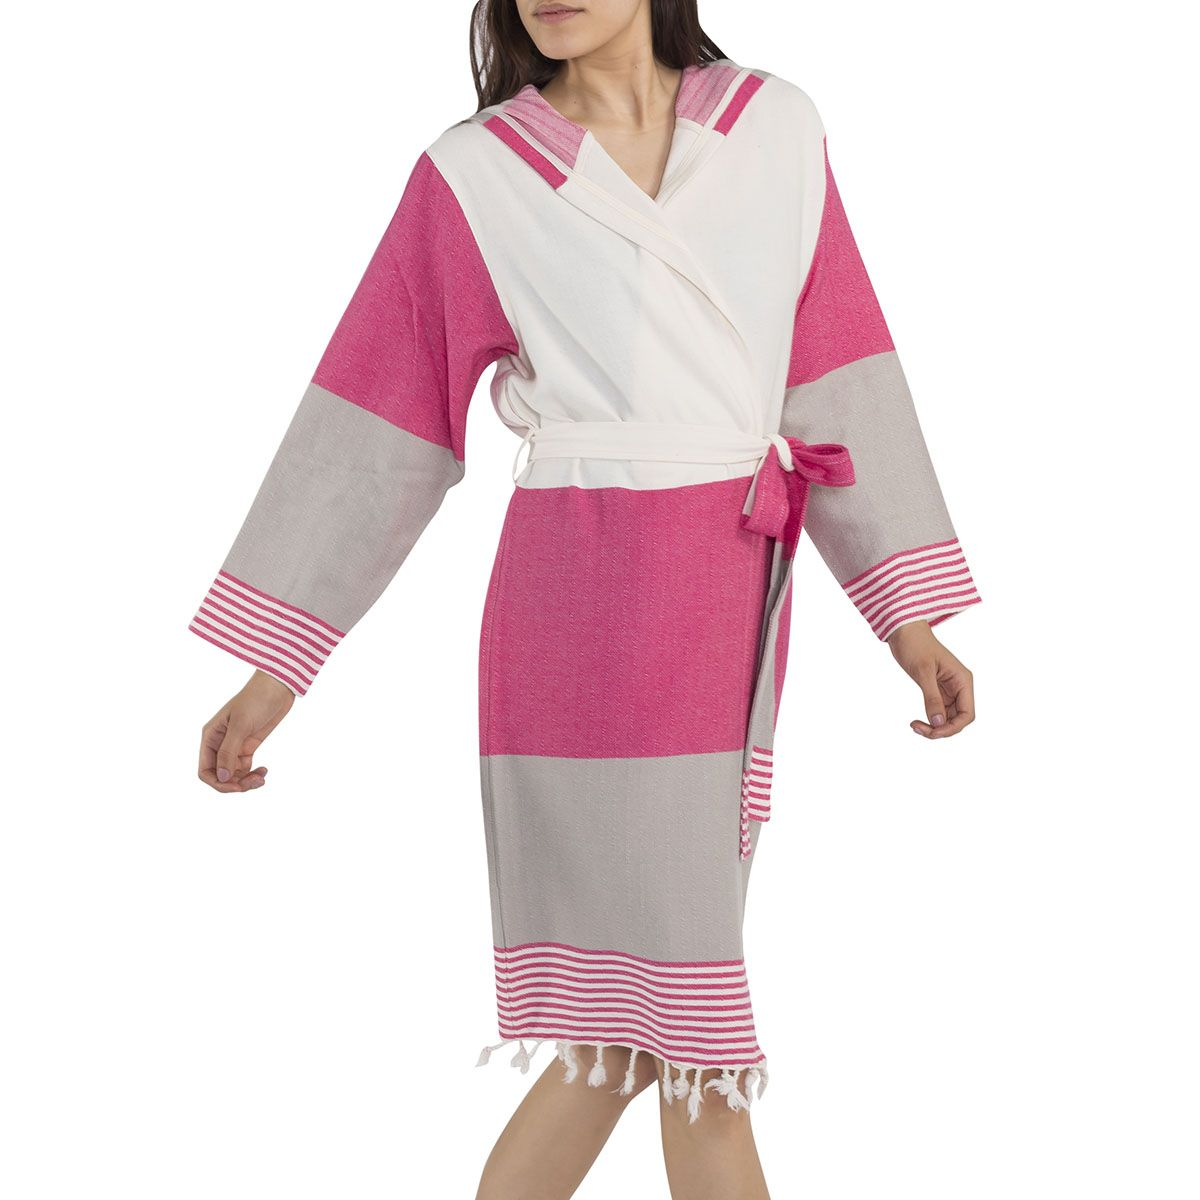 Bathrobe Twin Sultan with hood - Fuchsia / Taupe